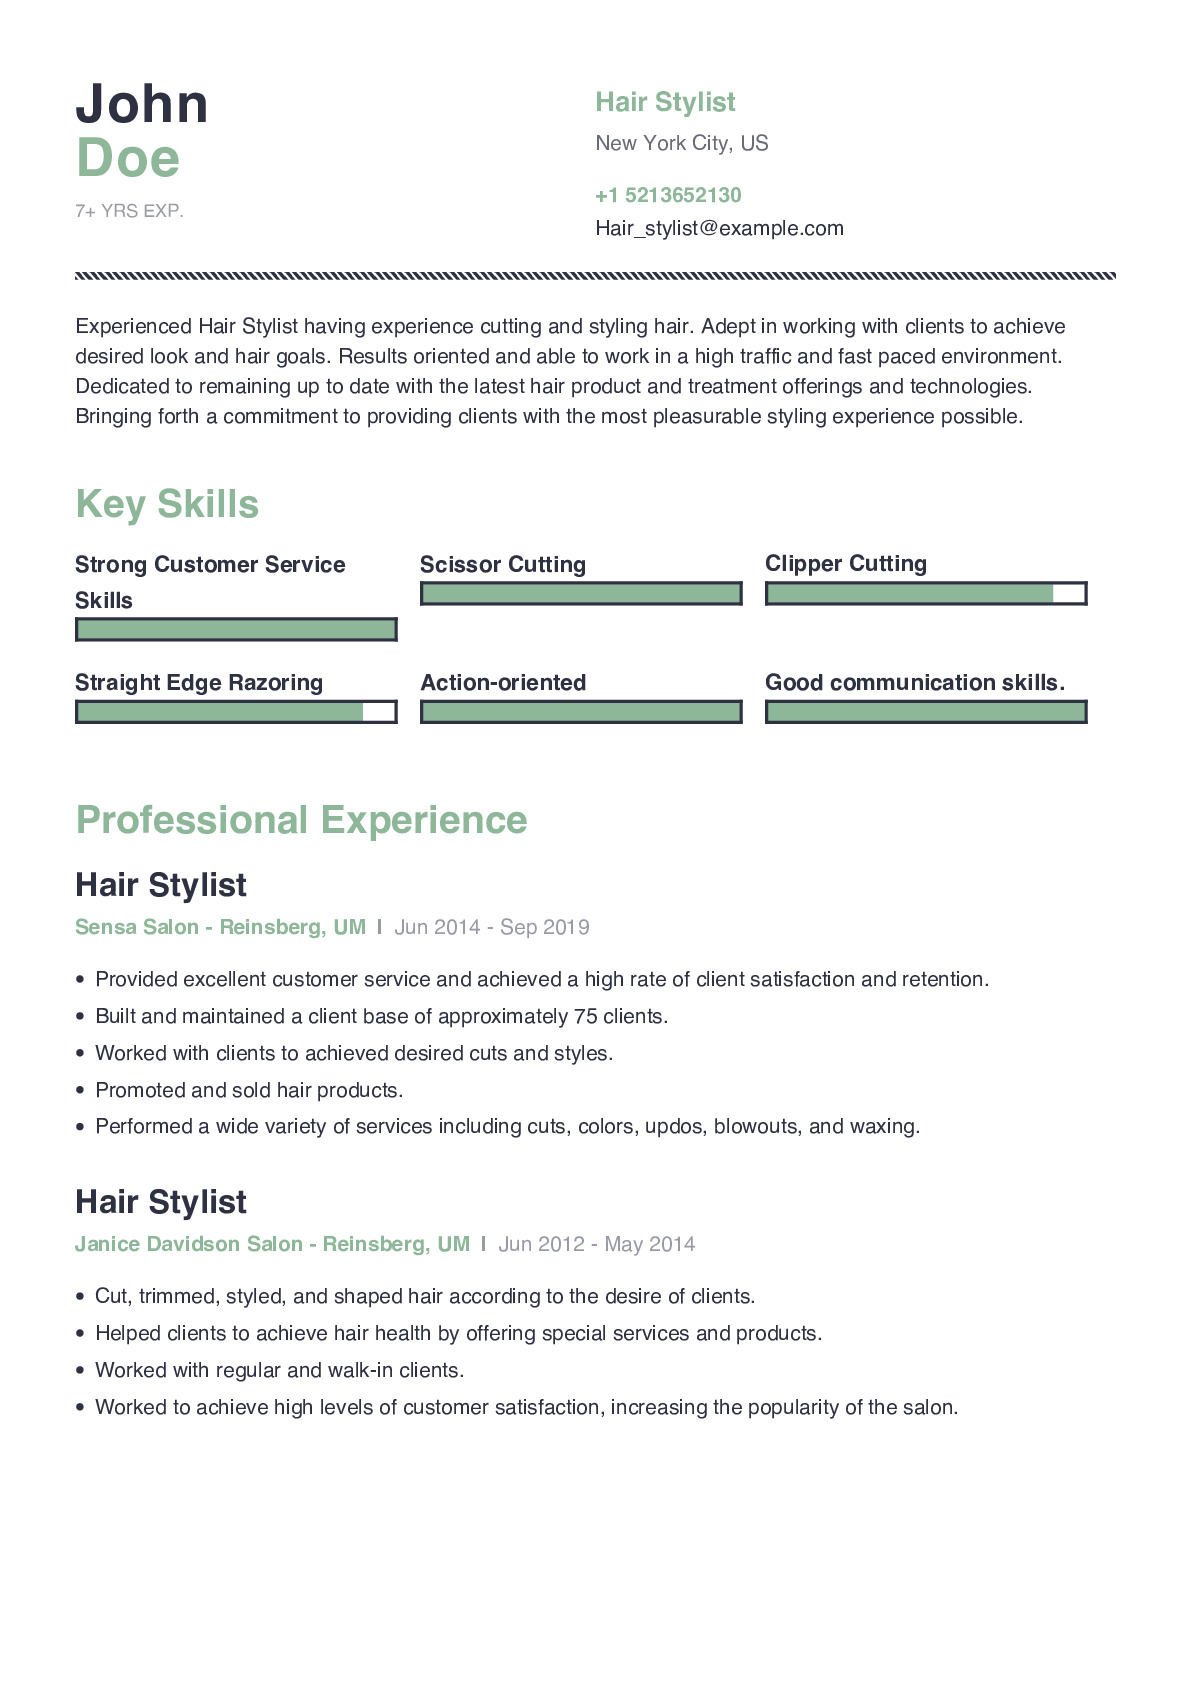 hair stylist resume example with content sample craftmycv professional human services for Resume Professional Hair Stylist Resume Sample